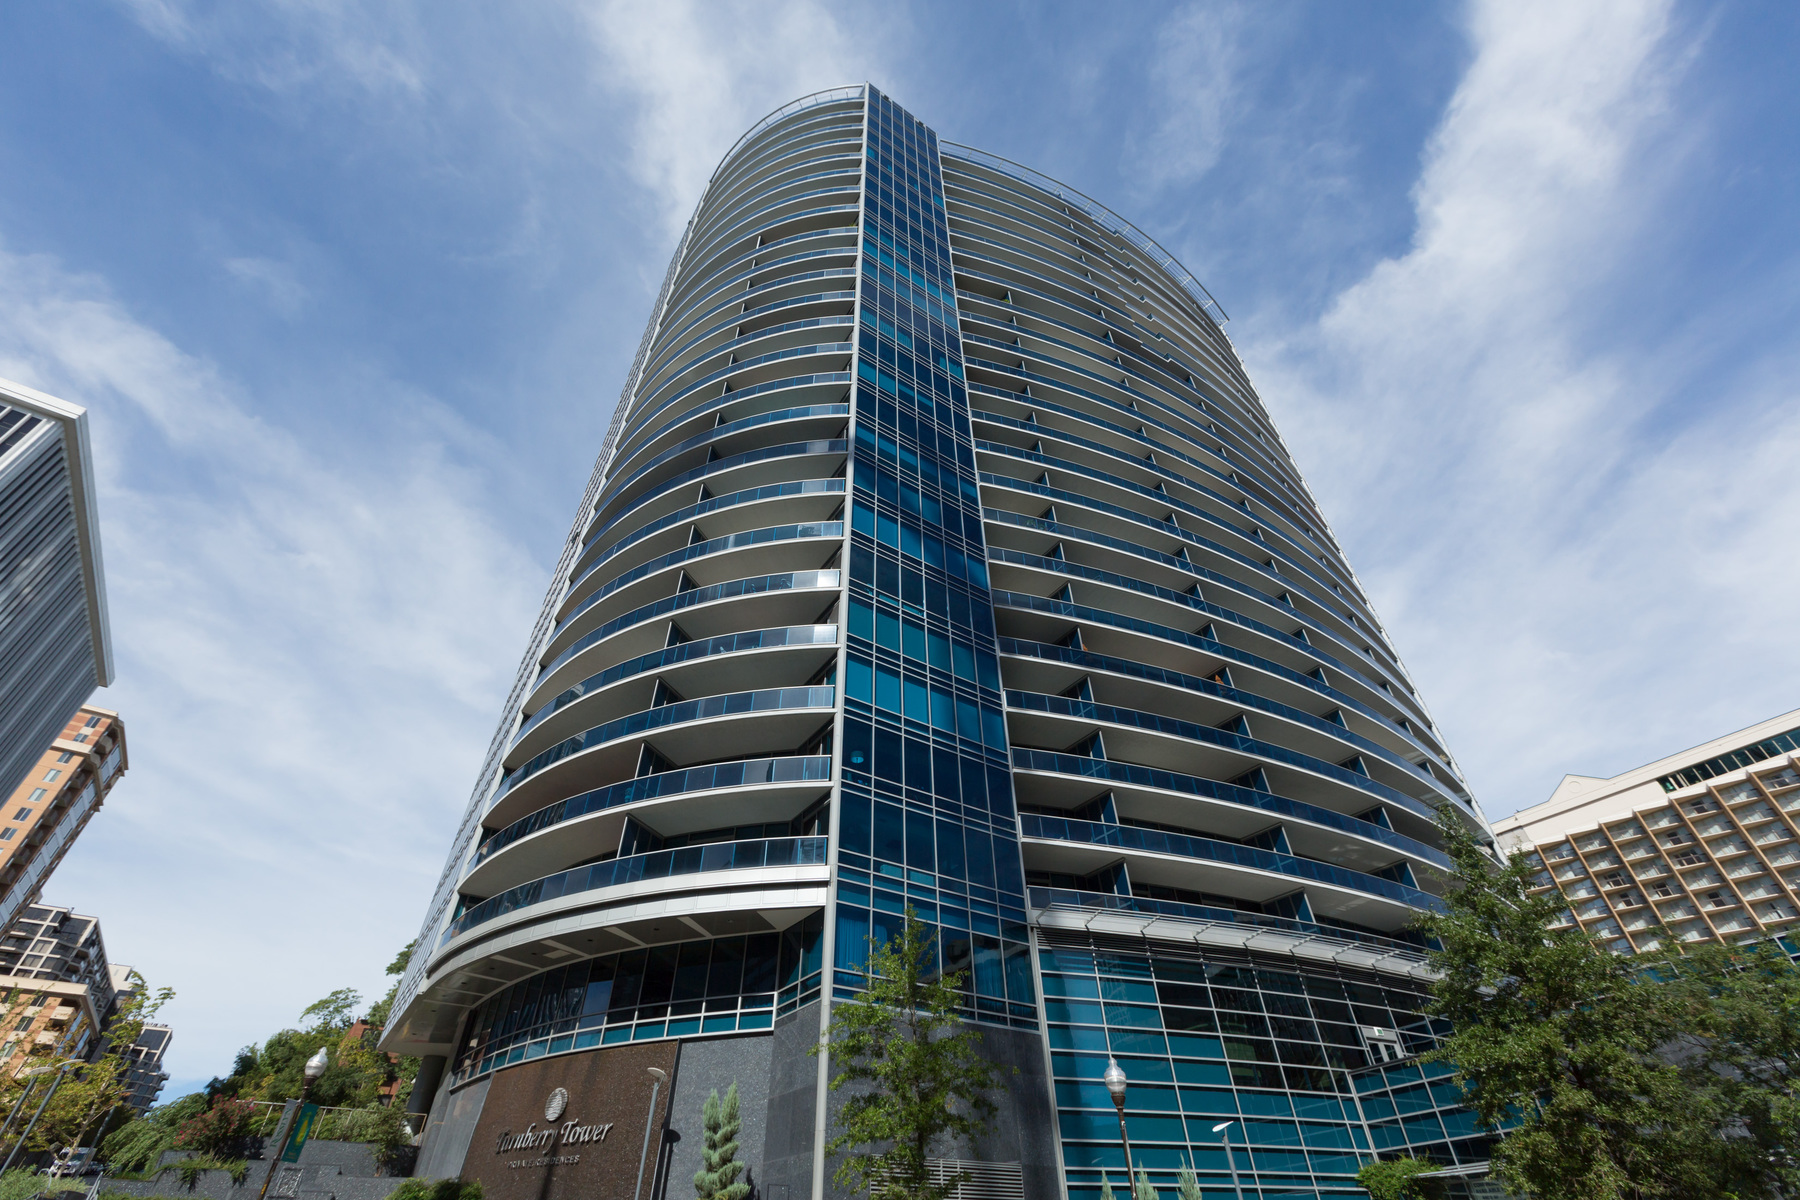 Condominium for Sale at Turnberry Tower 1881 N. Nash St 706 Arlington, Virginia 22209 United States